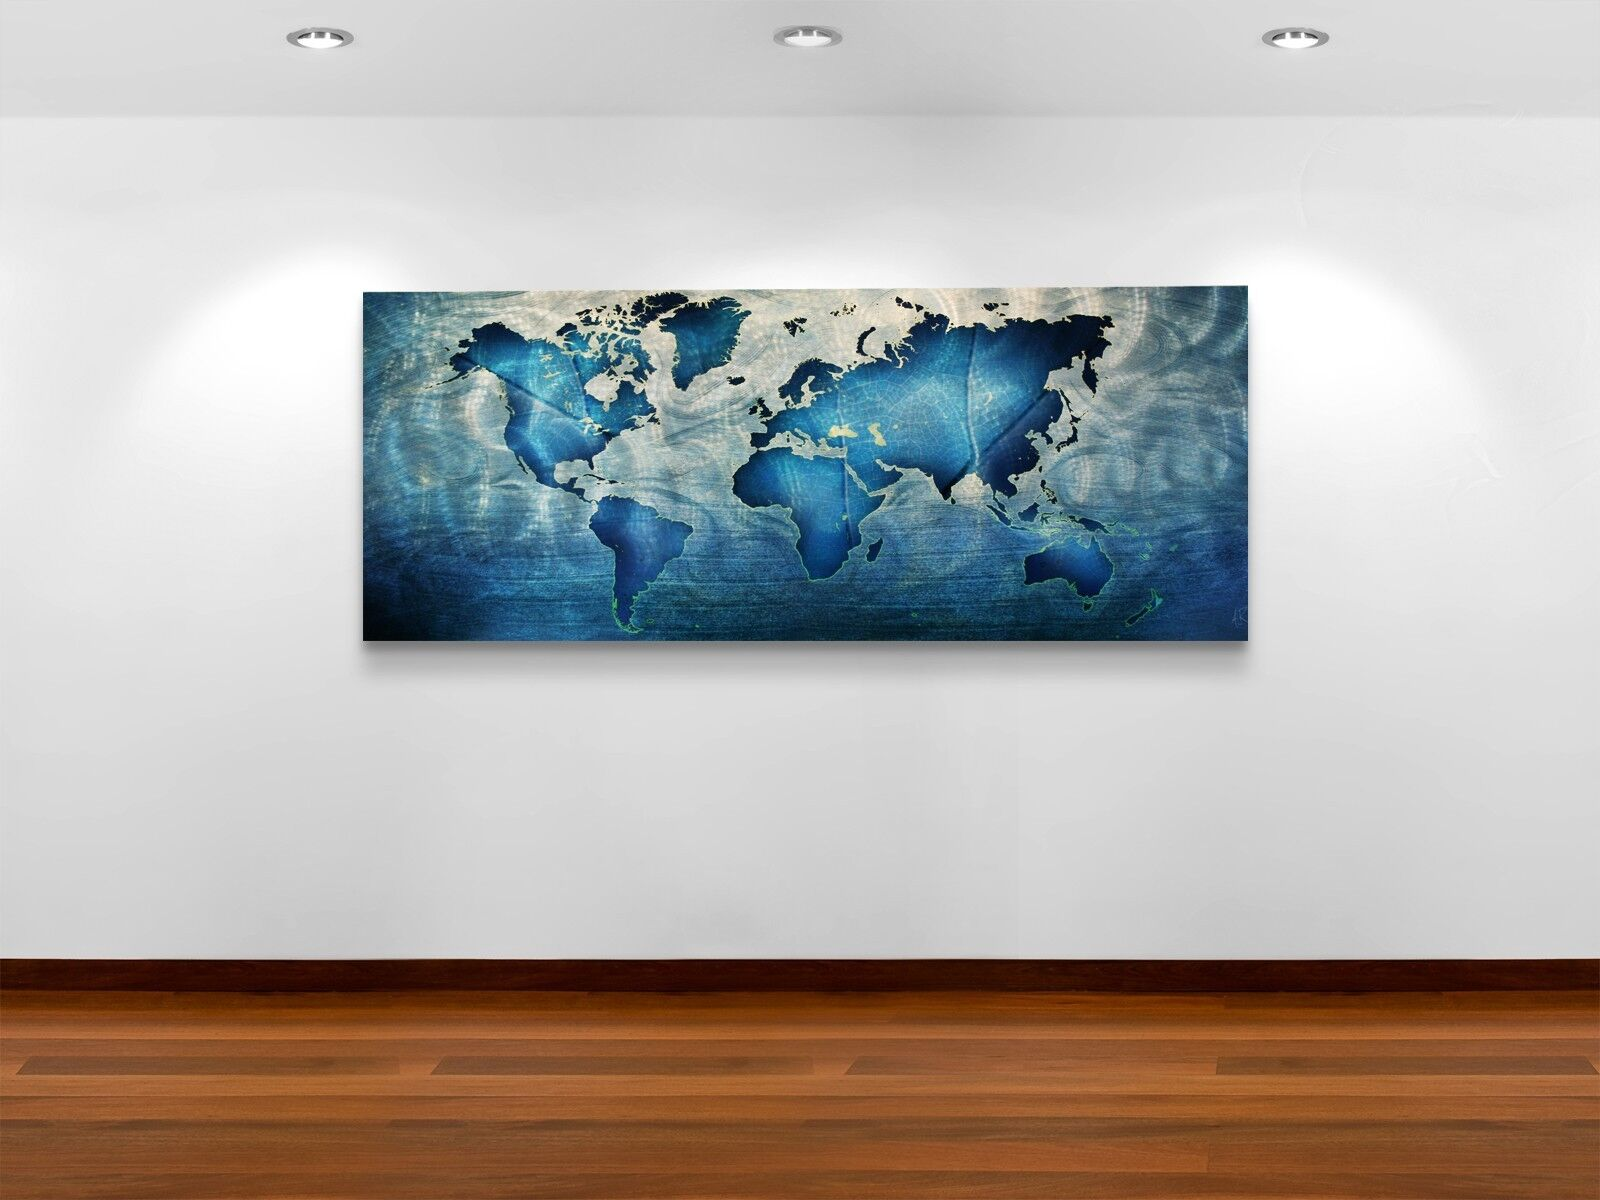 Beautiful Modern Metal Wall Hangings For Your Home: Modern Map Wall Art Contemporary Metal Abstract WOW Factor